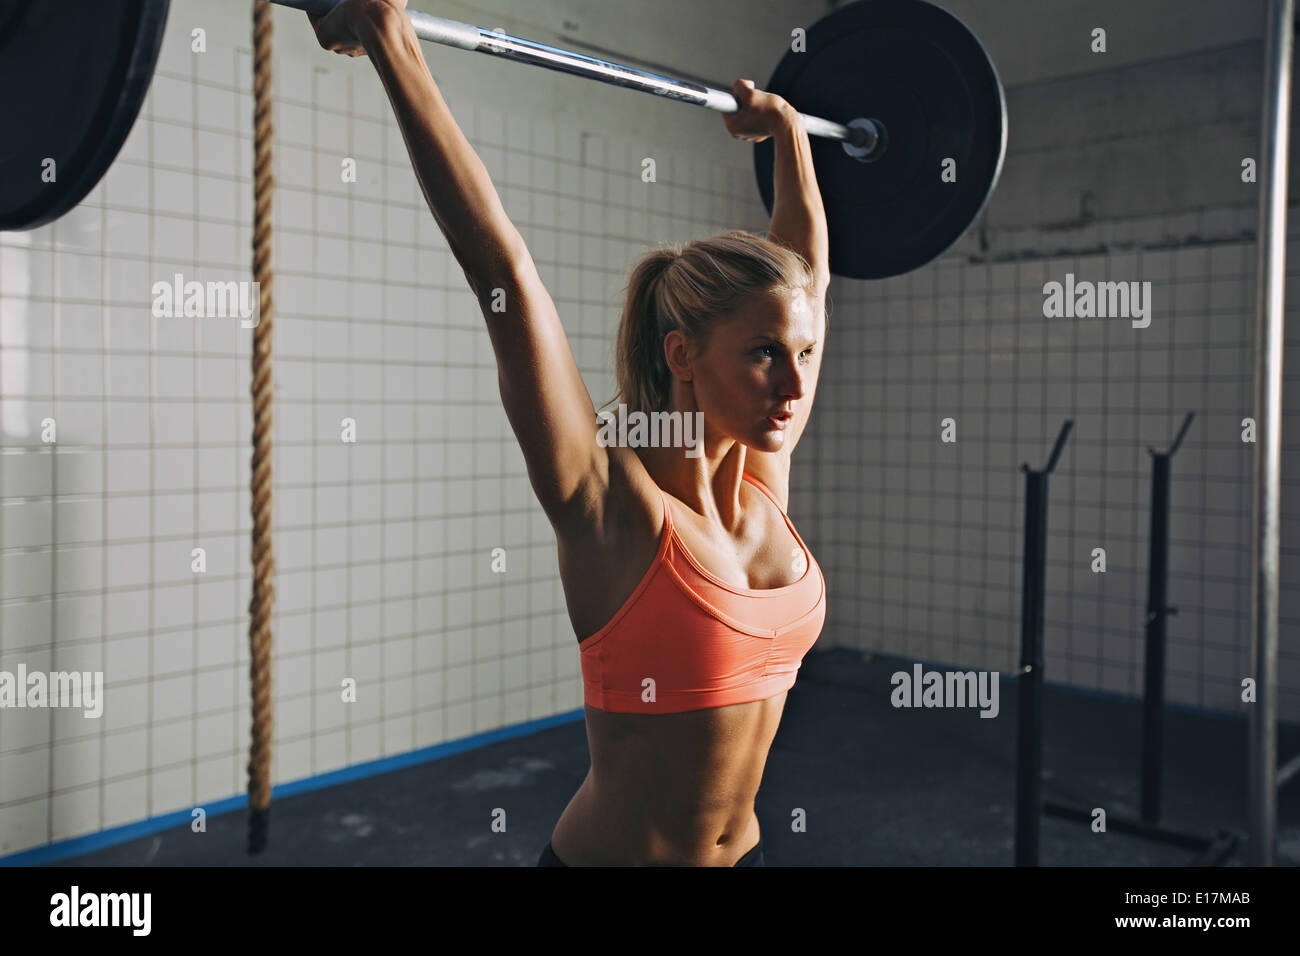 Strong woman lifting barbell as a part of crossfit exercise routine. Fit young woman lifting heavy weights at gym. - Stock Image